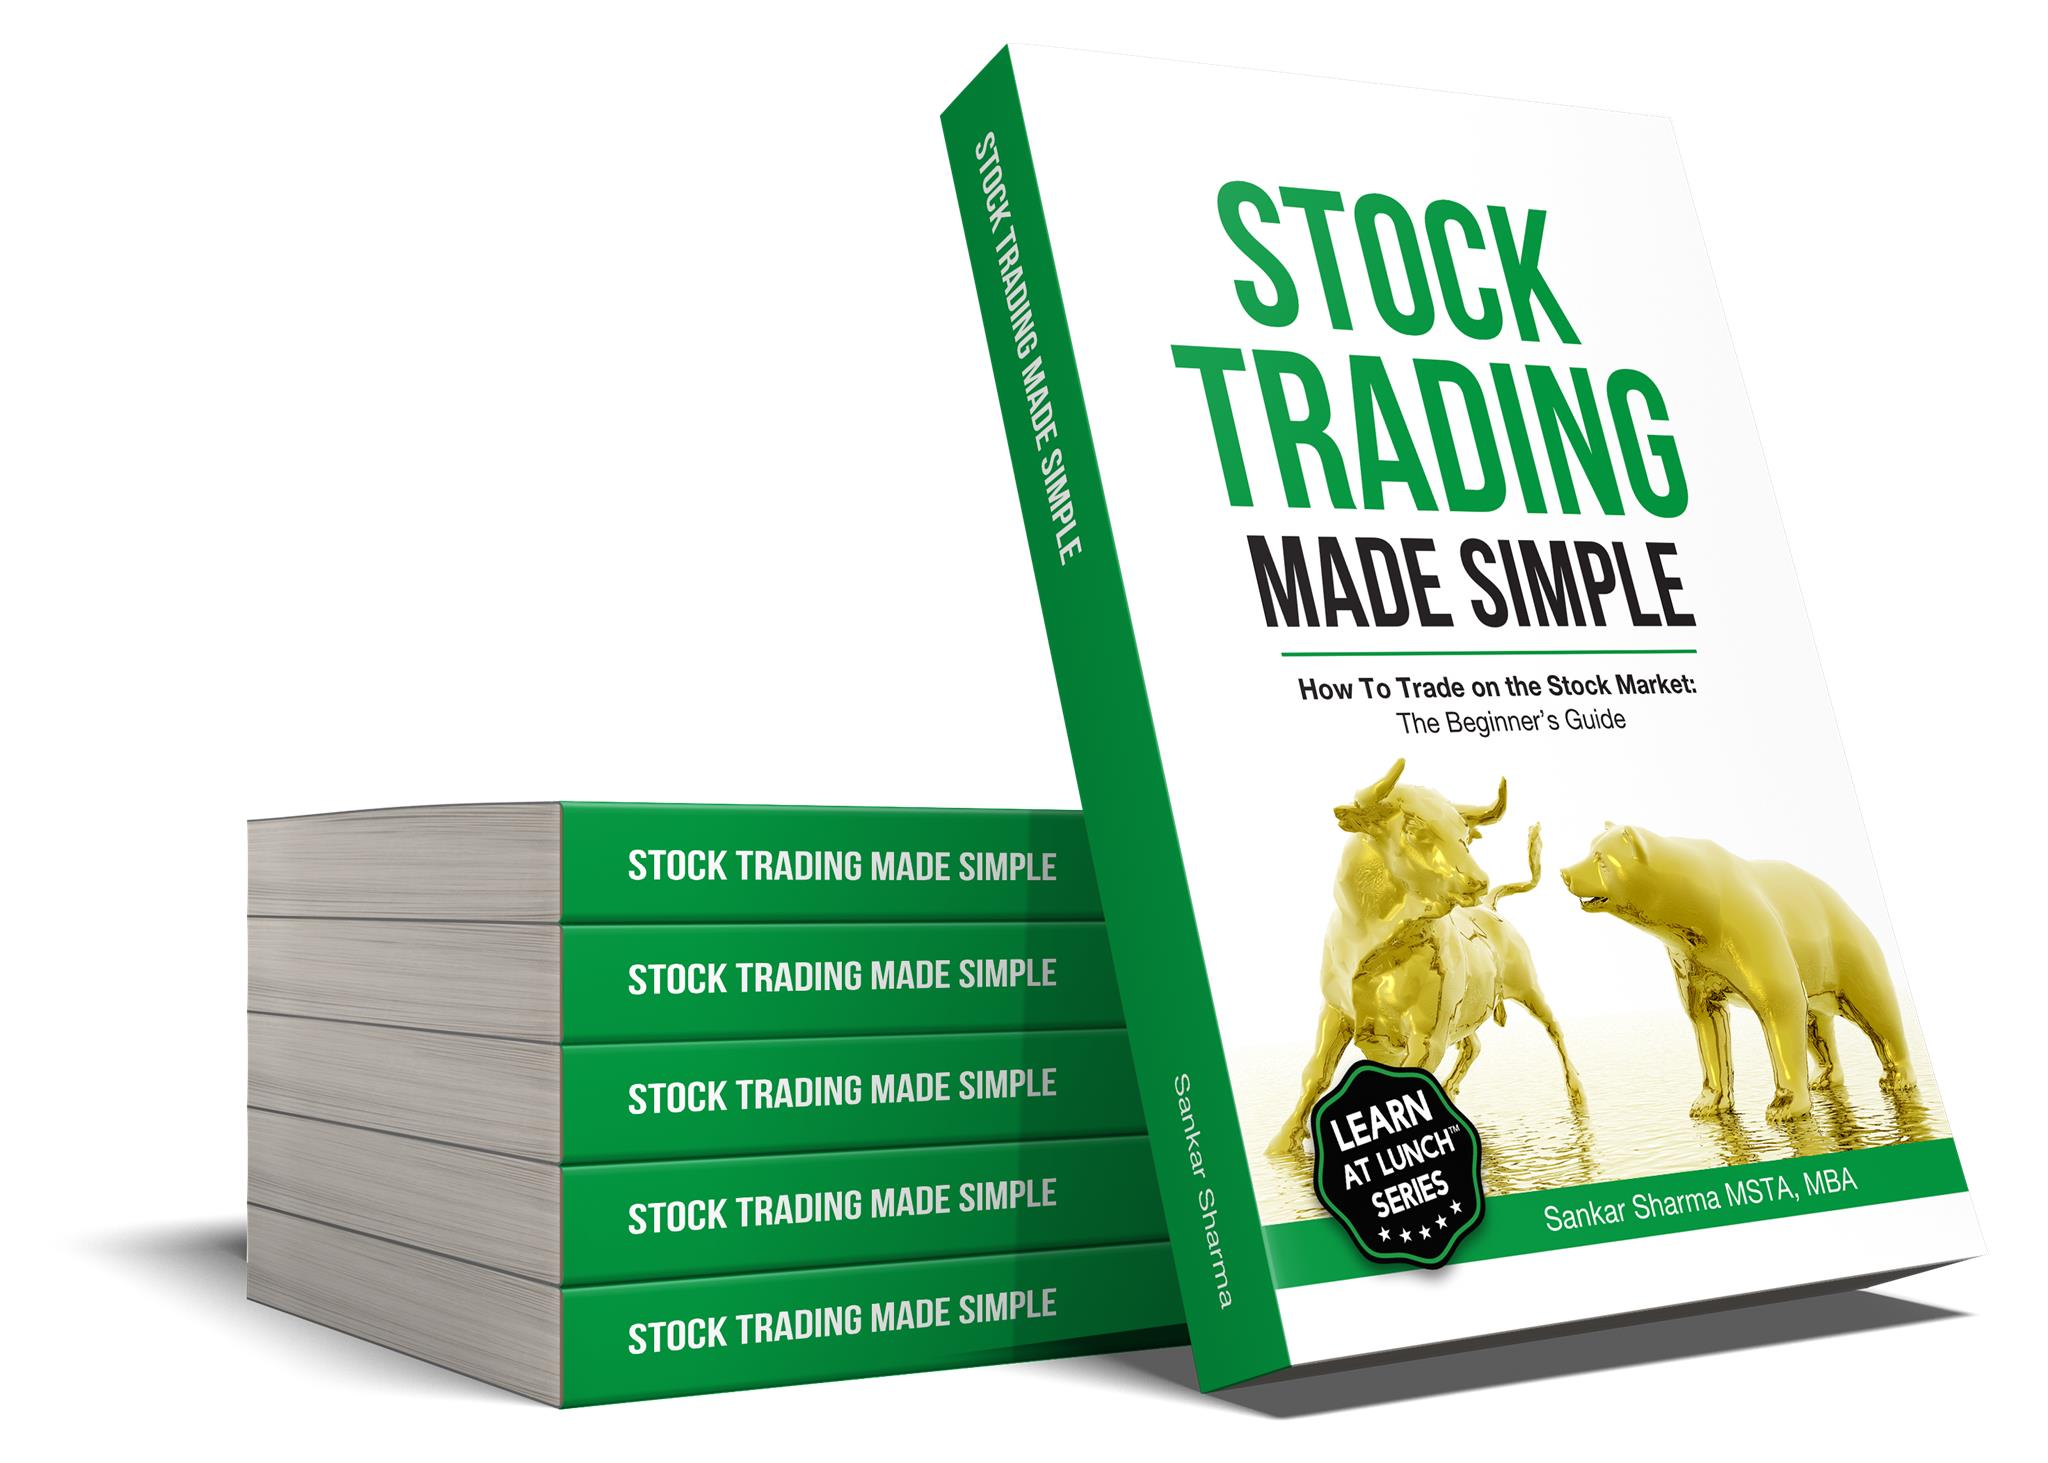 Stock Trading Made Simple Book